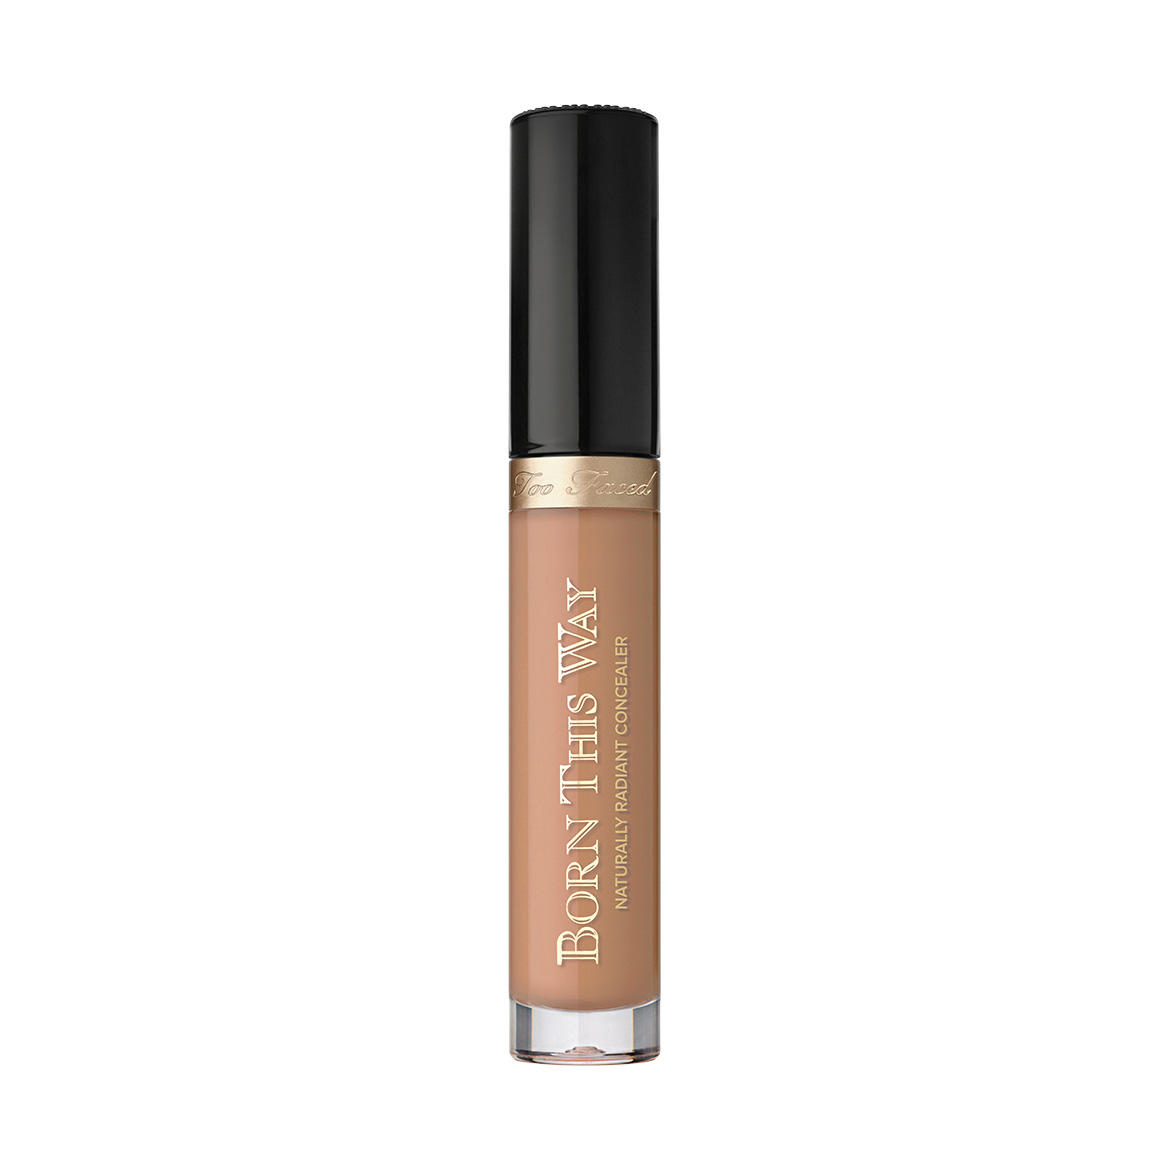 Too Faced Born This Way Naturally Radiant Concealer Deep Tan